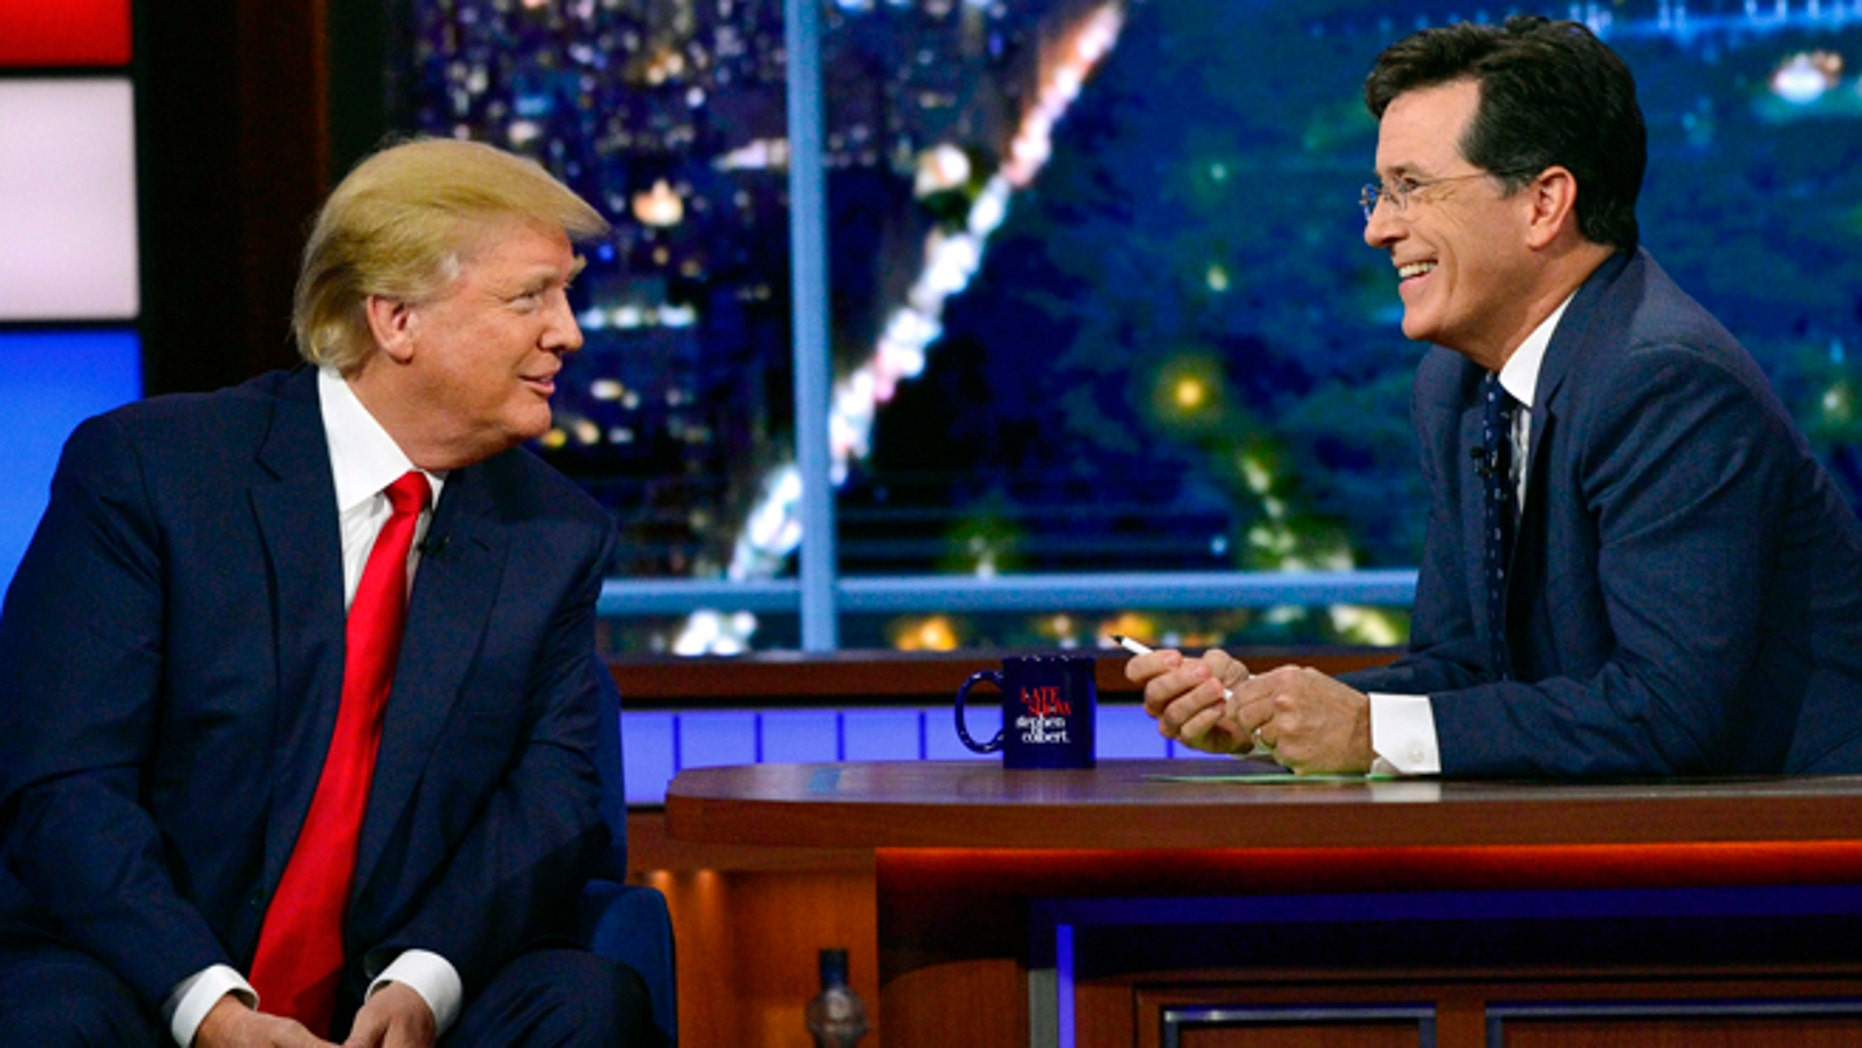 In this photo provided by CBS, Republican presidential candidate Donald Trump, left, joins host Stephen Colbert on the set of âThe Late Show with Stephen Colbert,â Tuesday, Sept. 22, 2015, in New York. (John Paul Filo/CBS via AP) MANDATORY CREDIT; NO ARCHIVE; NO SALES; NORTH AMERICAN USE ONLY